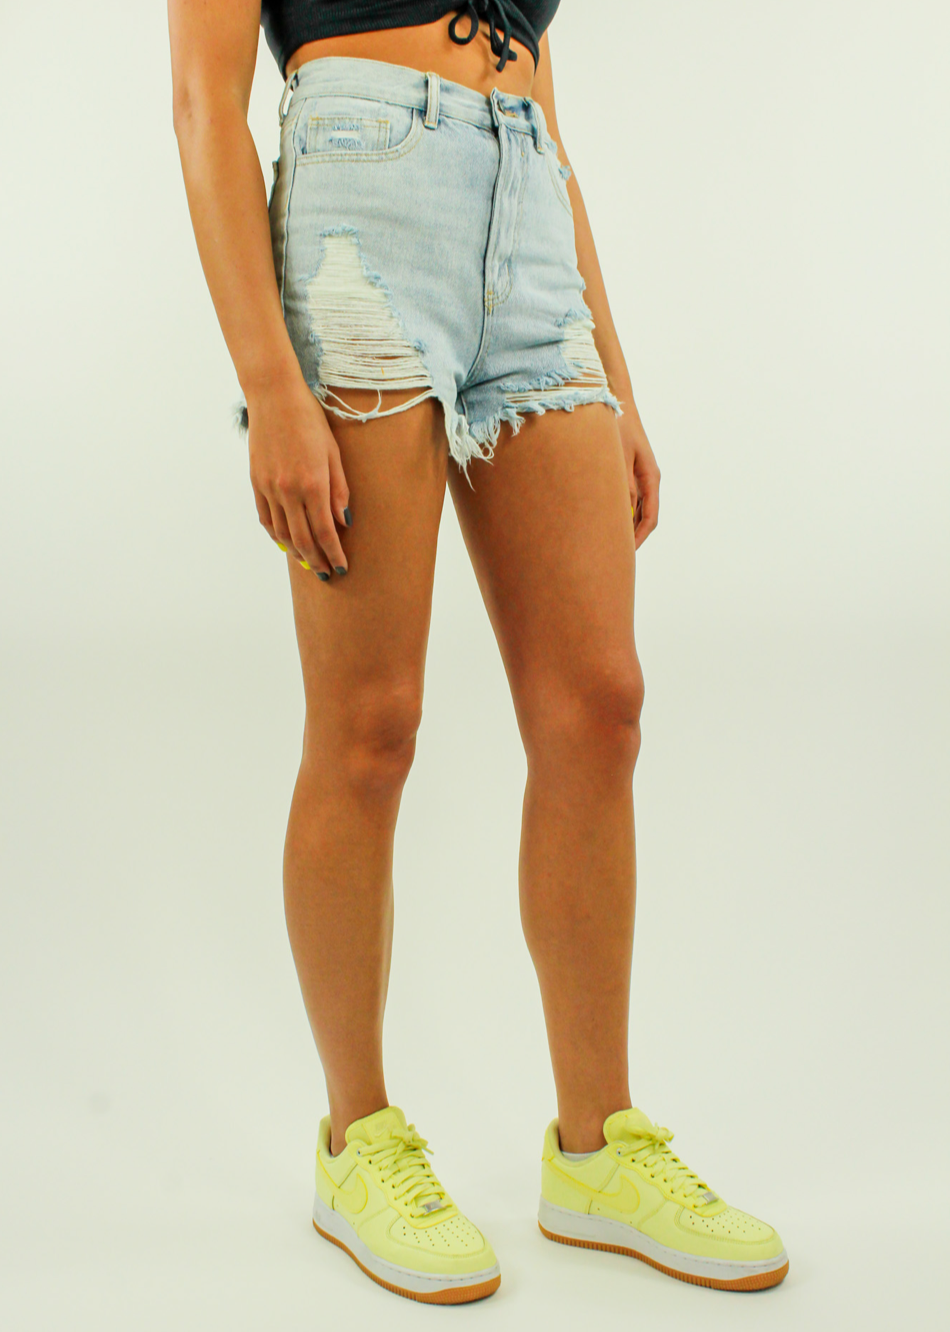 In Repair Shorts ★ Light Wash Denim - Rock N Rags